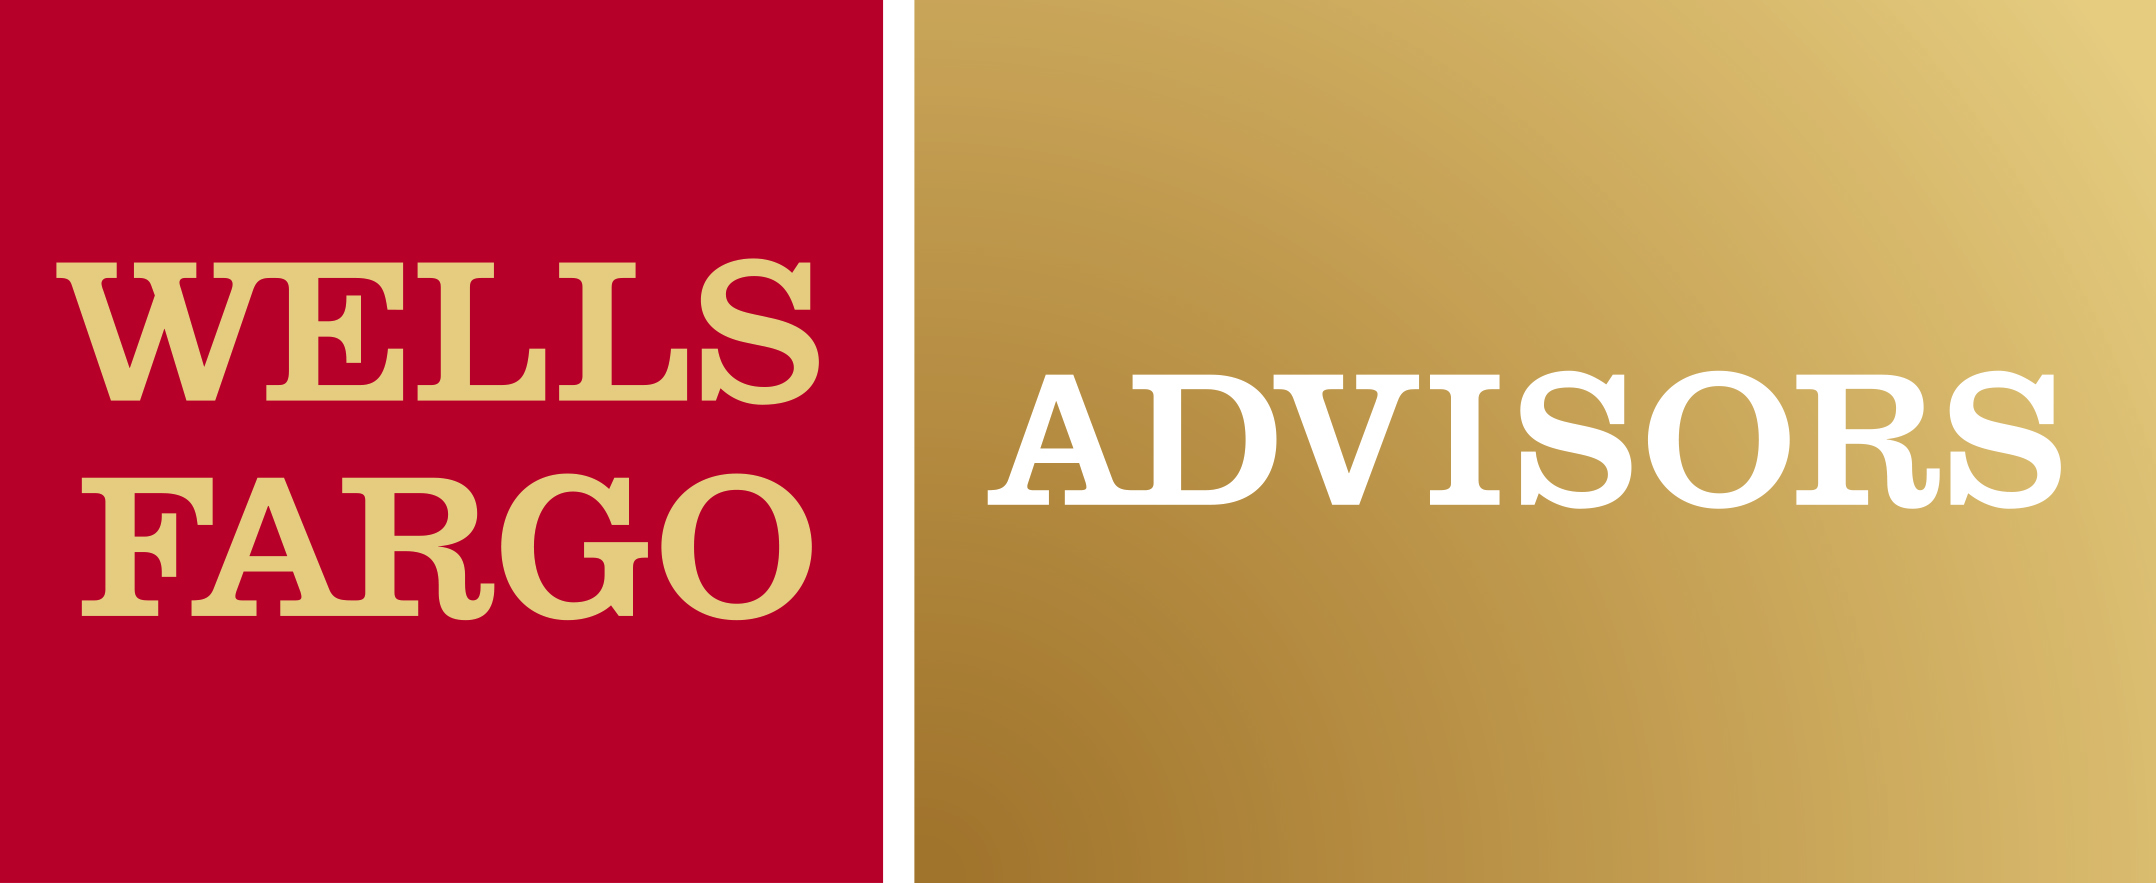 wells-fargo-advisors